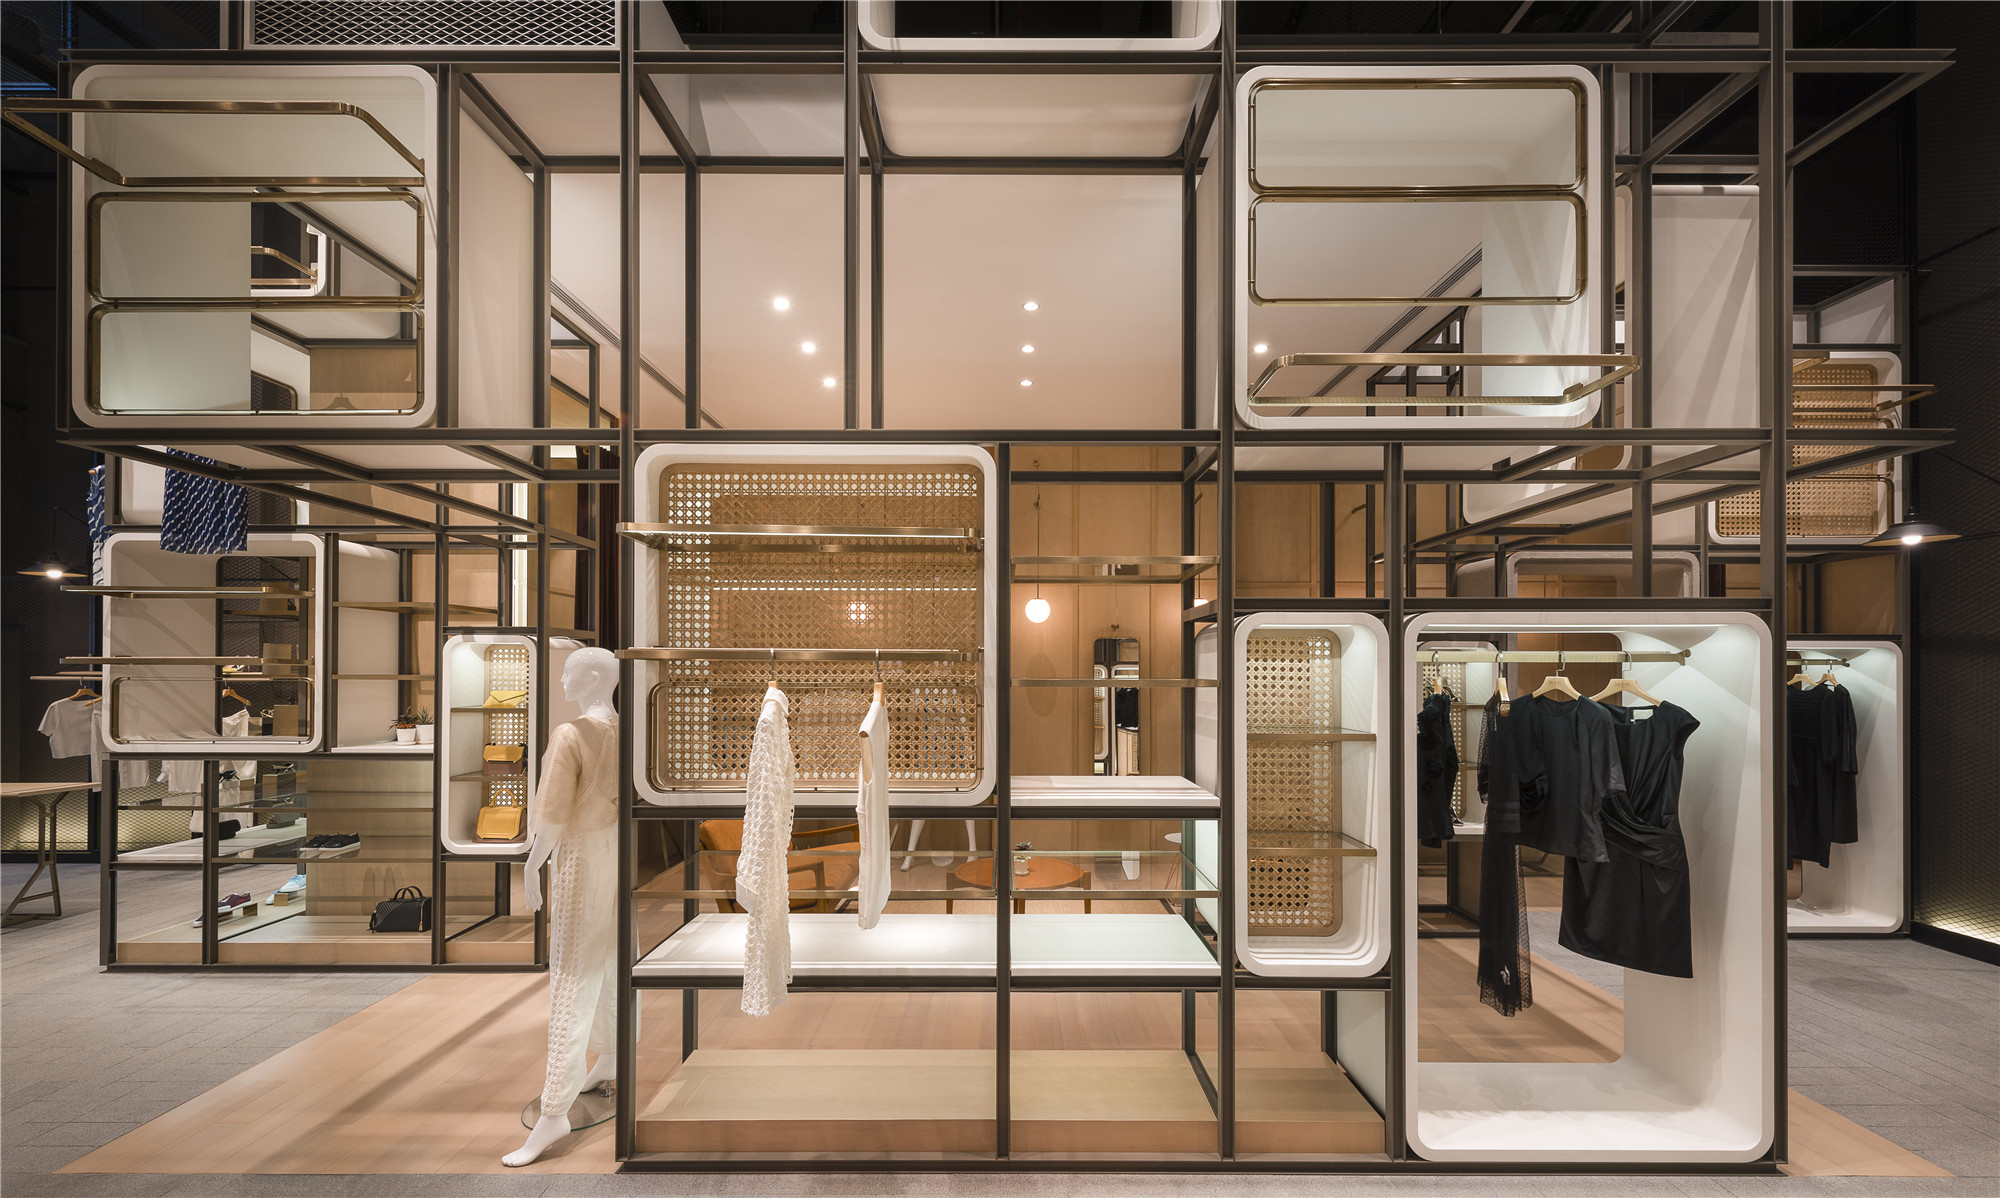 The modular lilong lukstudio archdaily for Retail store design software